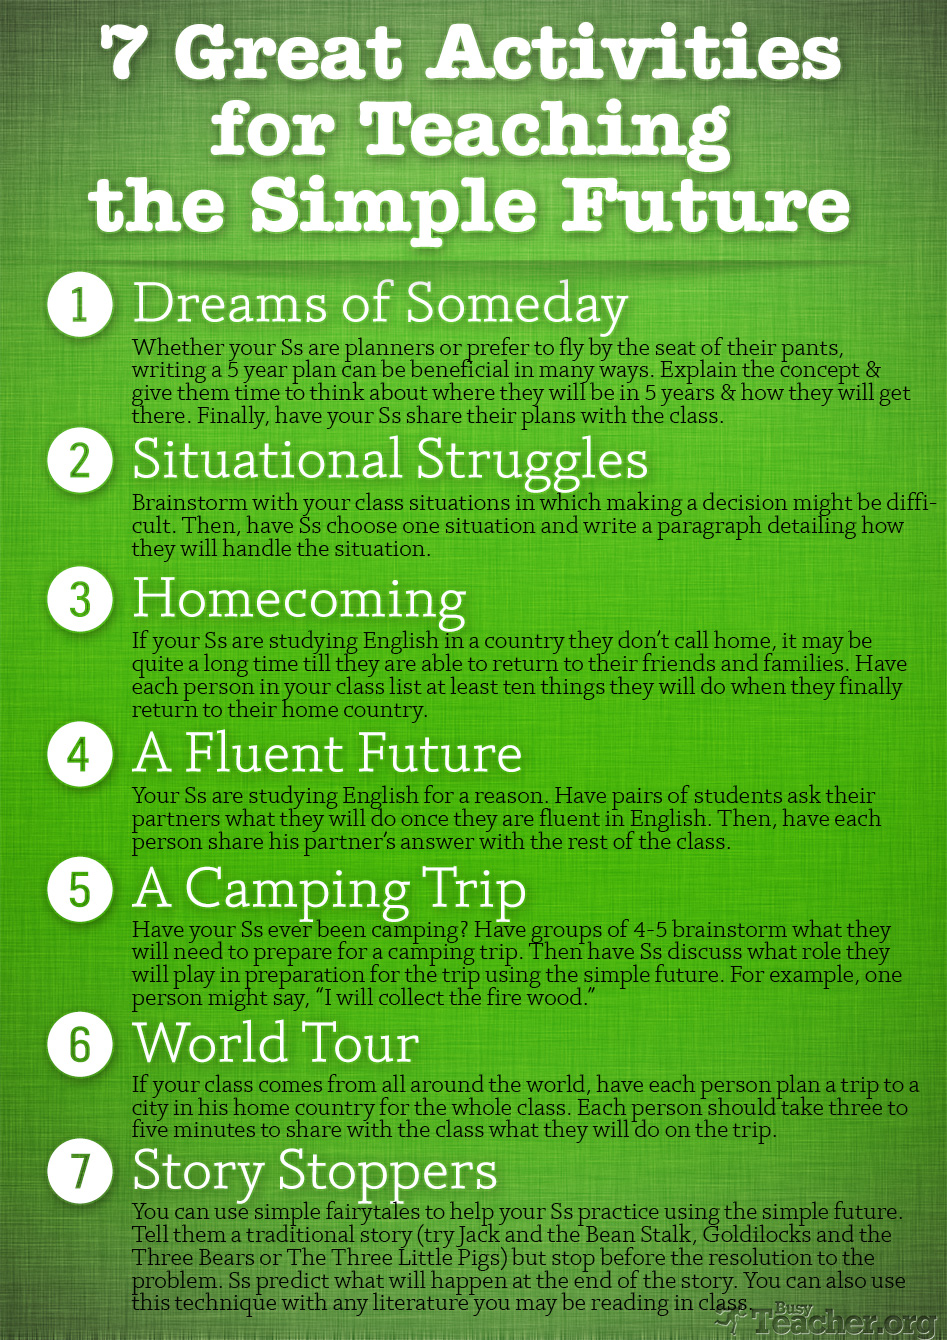 7 Great Activities to Teach the Simple Future: Poster